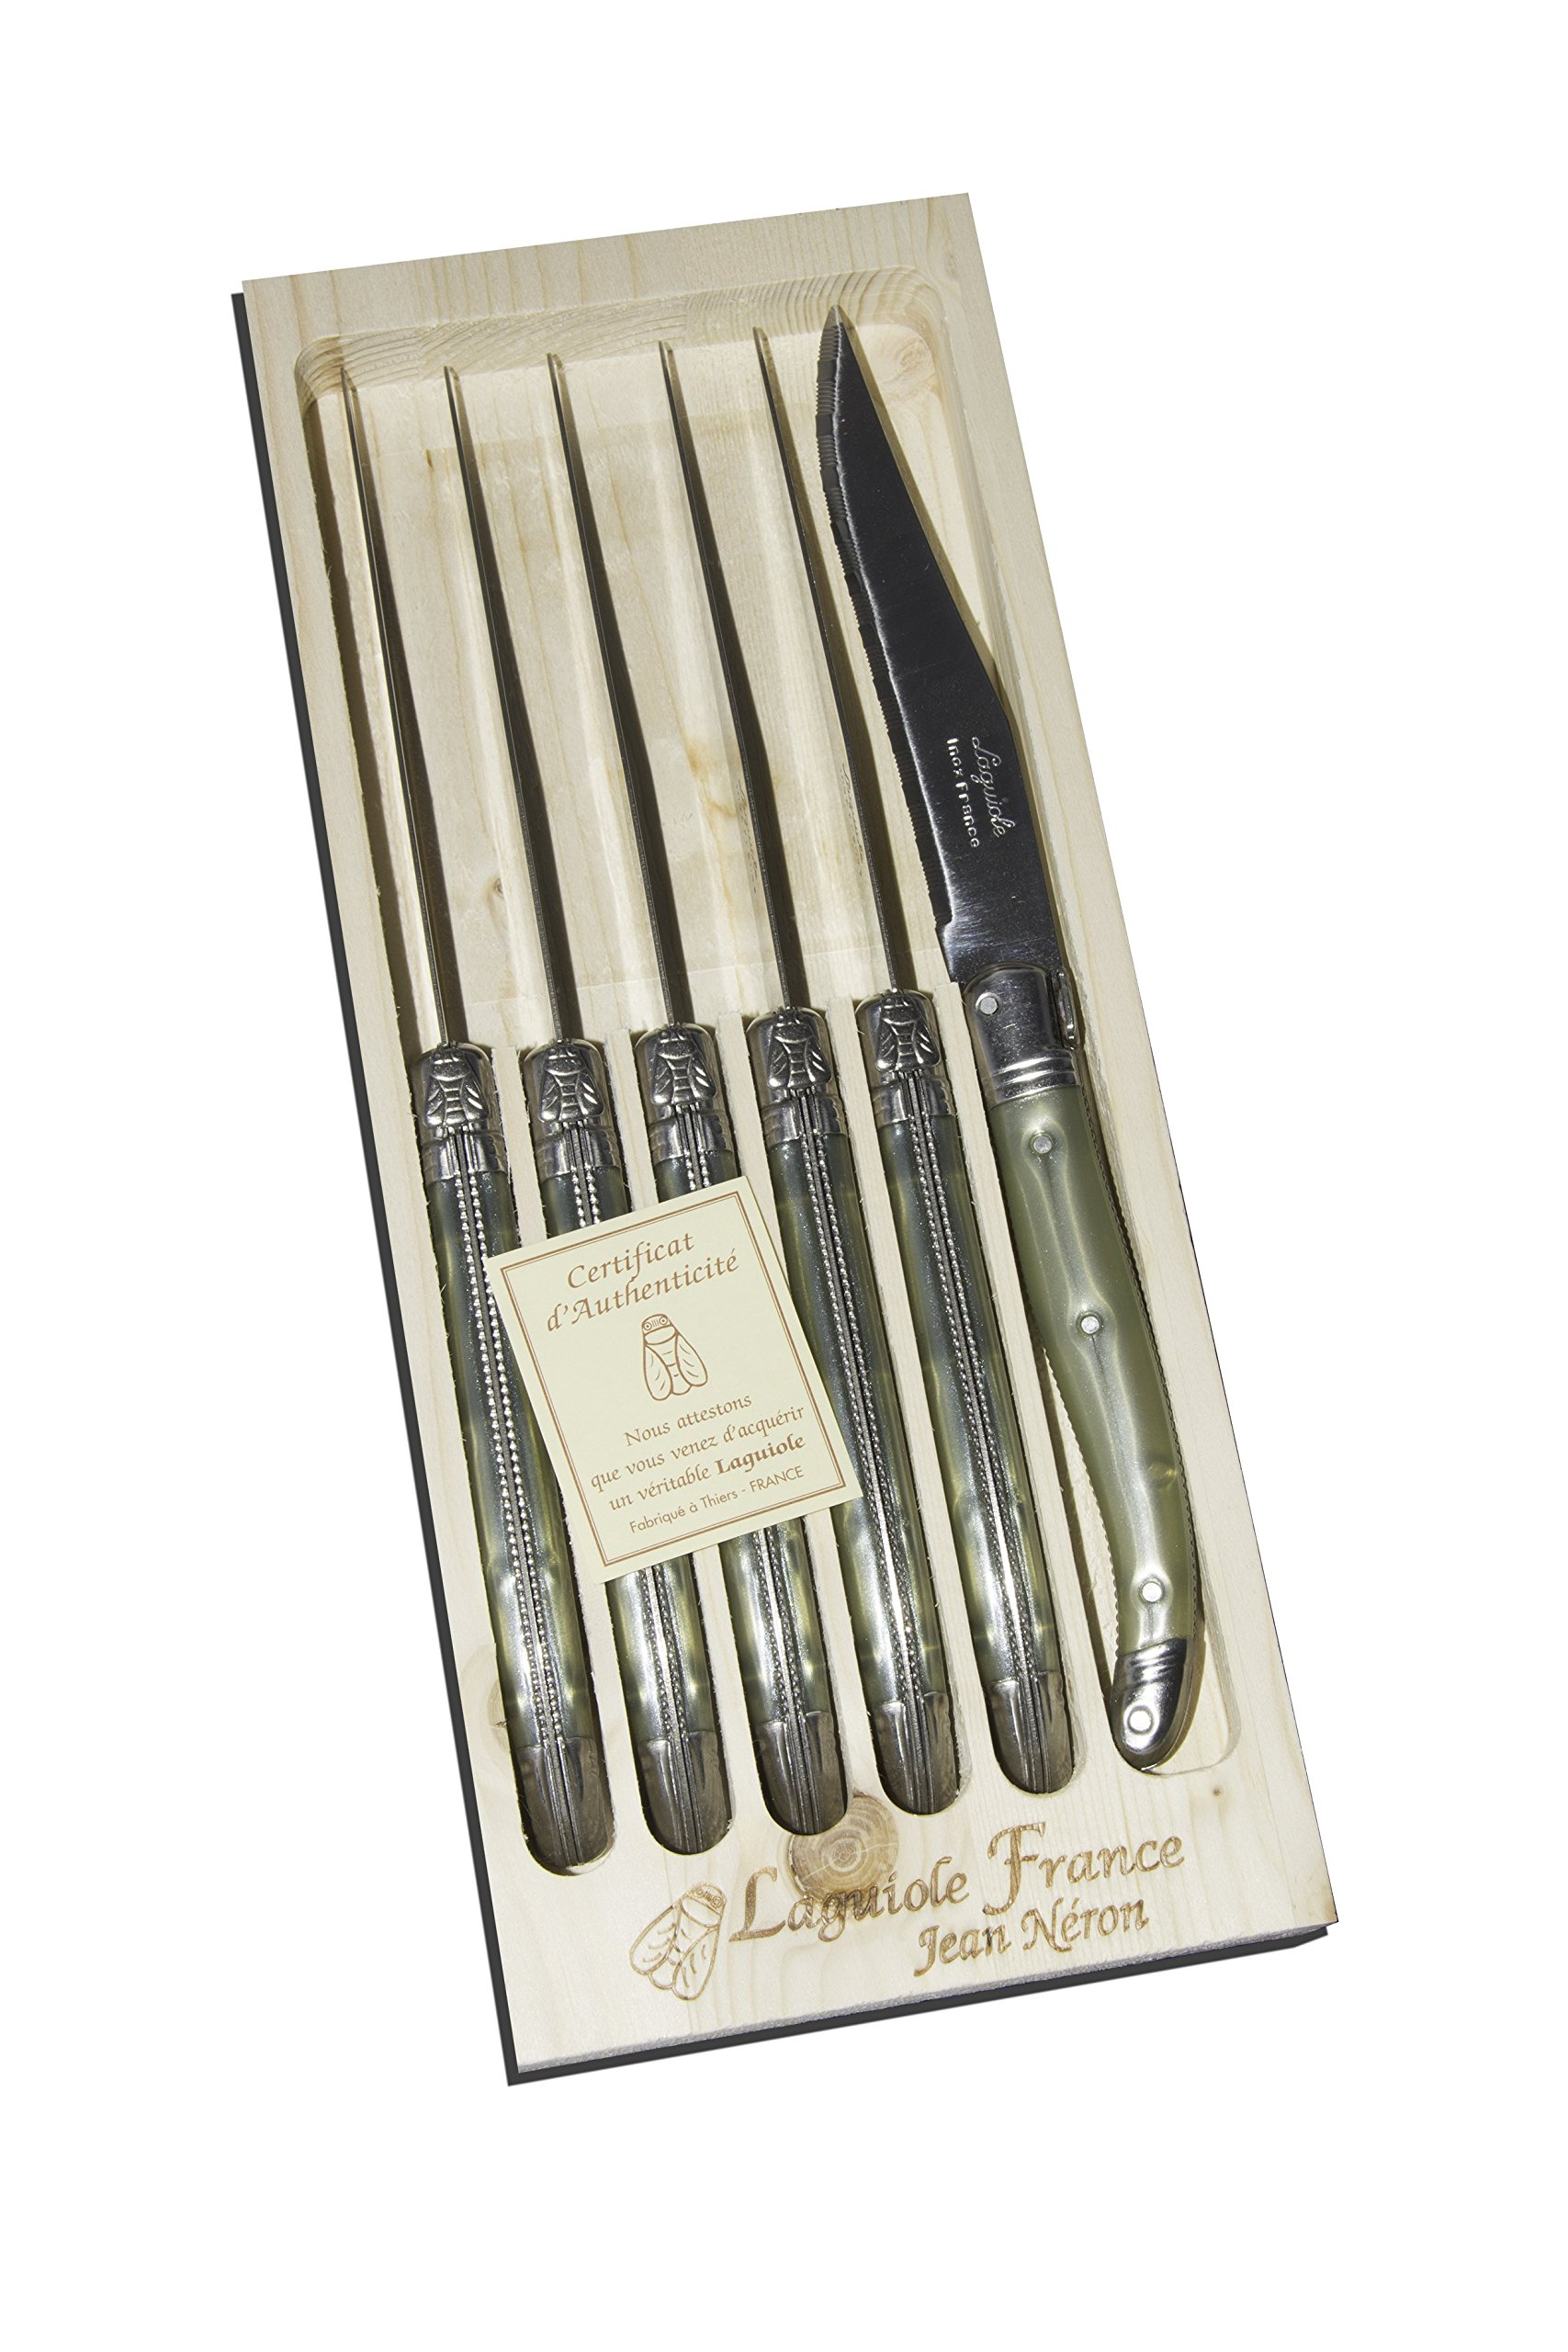 Neron Coutellerie 6 Piece Laguiole Steak Knife Set With Plates Champagne Handle In Wooden Box, Silver